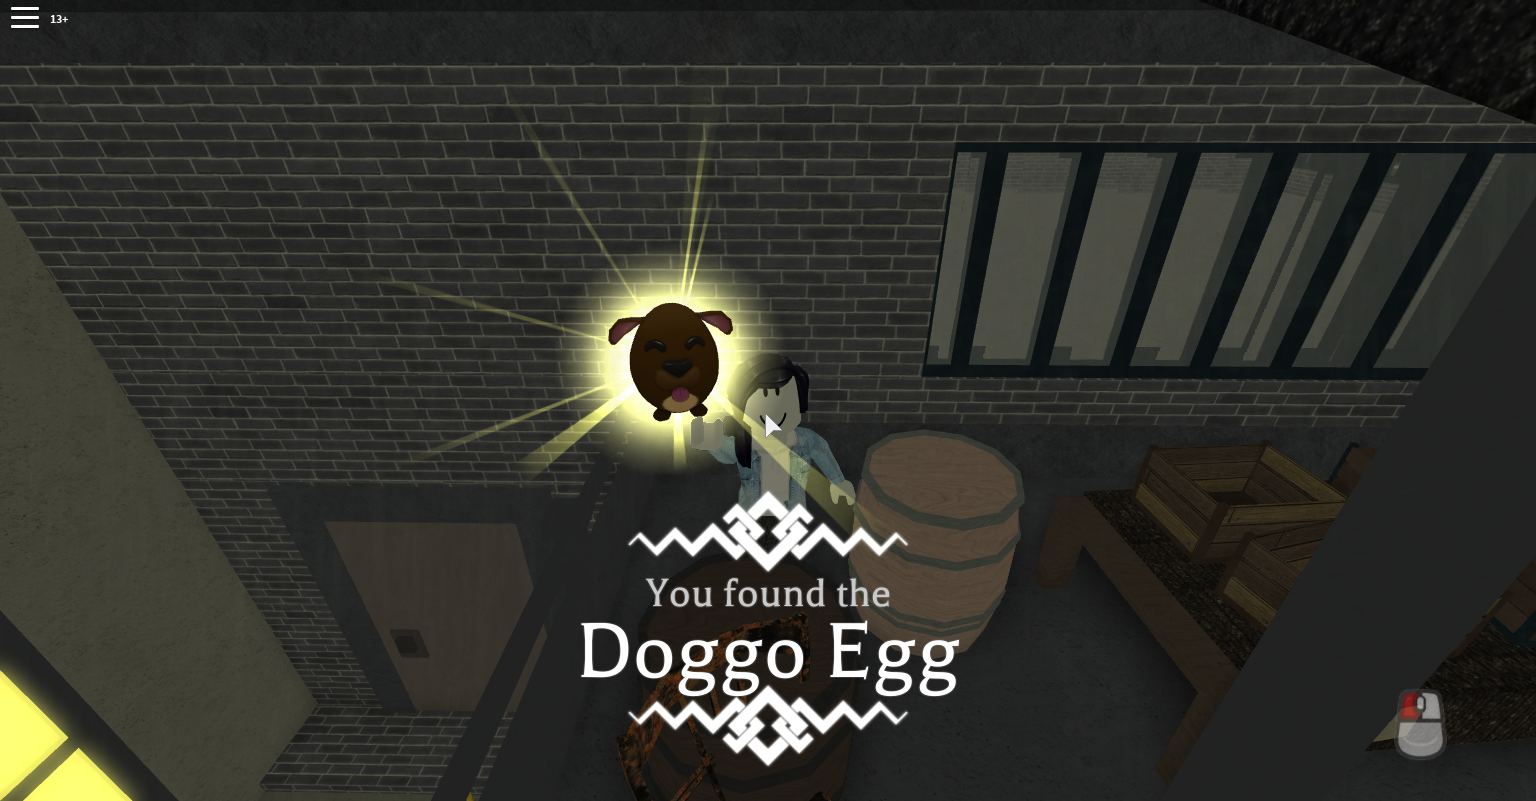 All Eggs In Undernest Roblox 2018 Egg Hunt Aveyn S Blog Roblox Egg Hunt 2018 How To Find All The Eggs In Hardboiled City